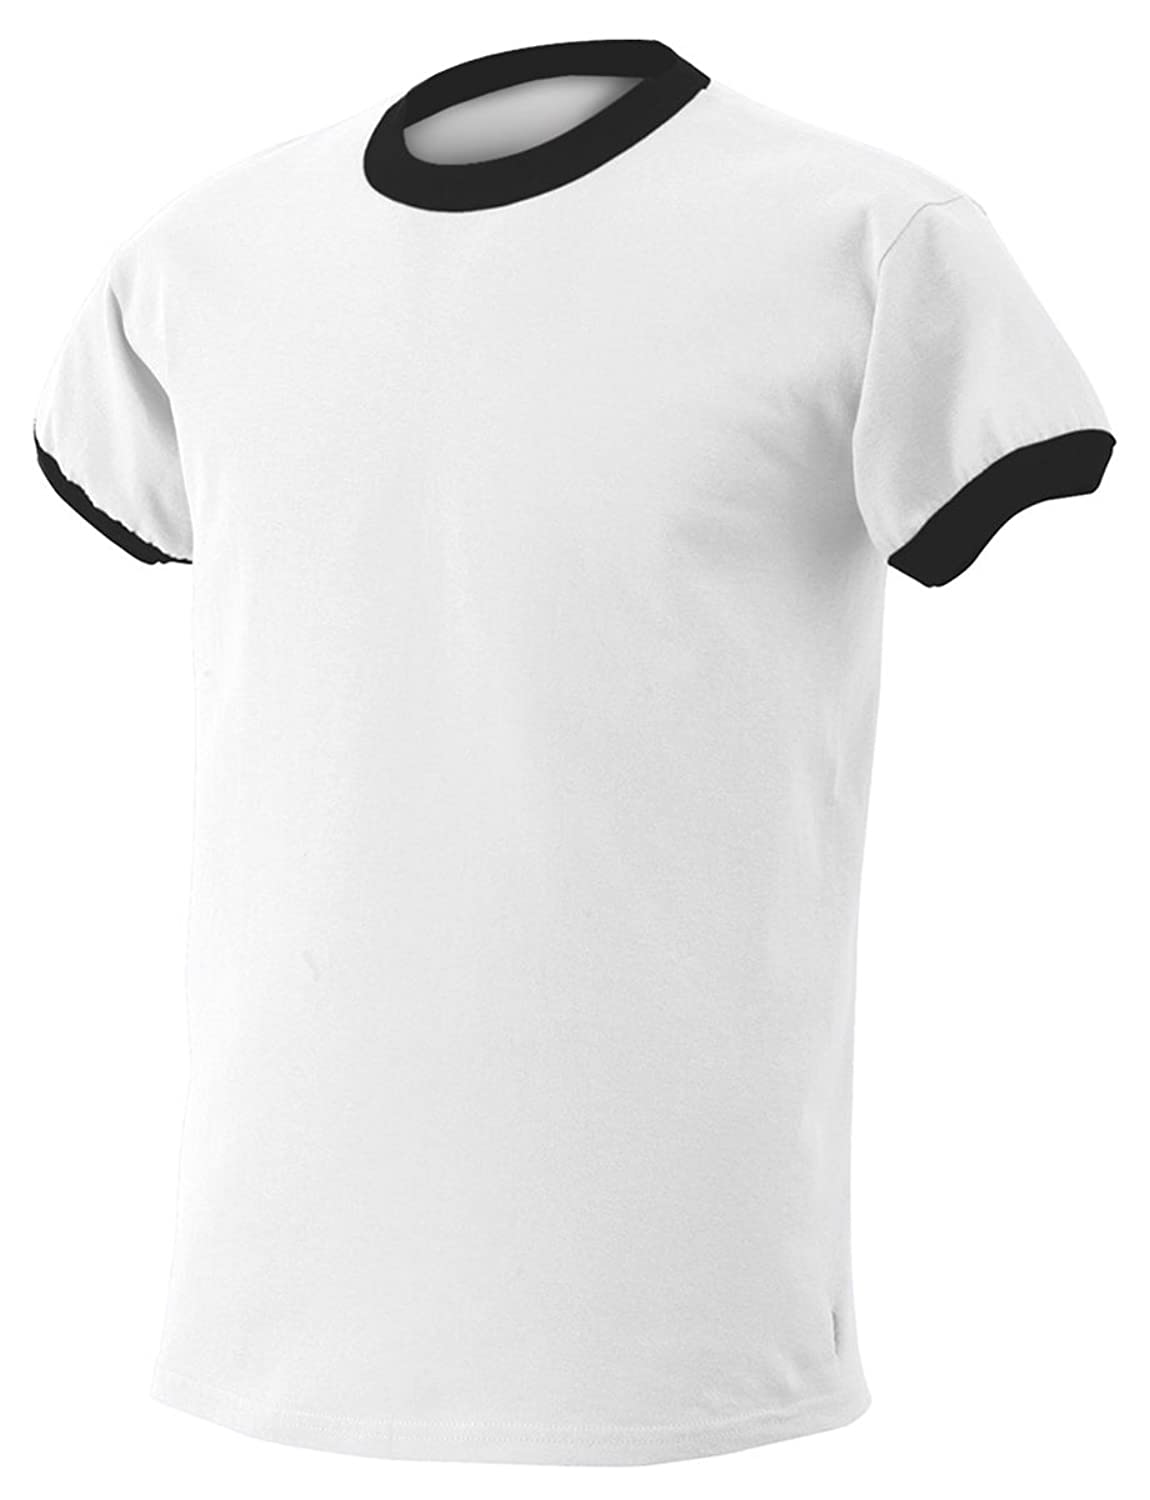 Gildan 6.1 oz. Ultra Cotton Ringer T-Shirt, White/Black, XX-Large